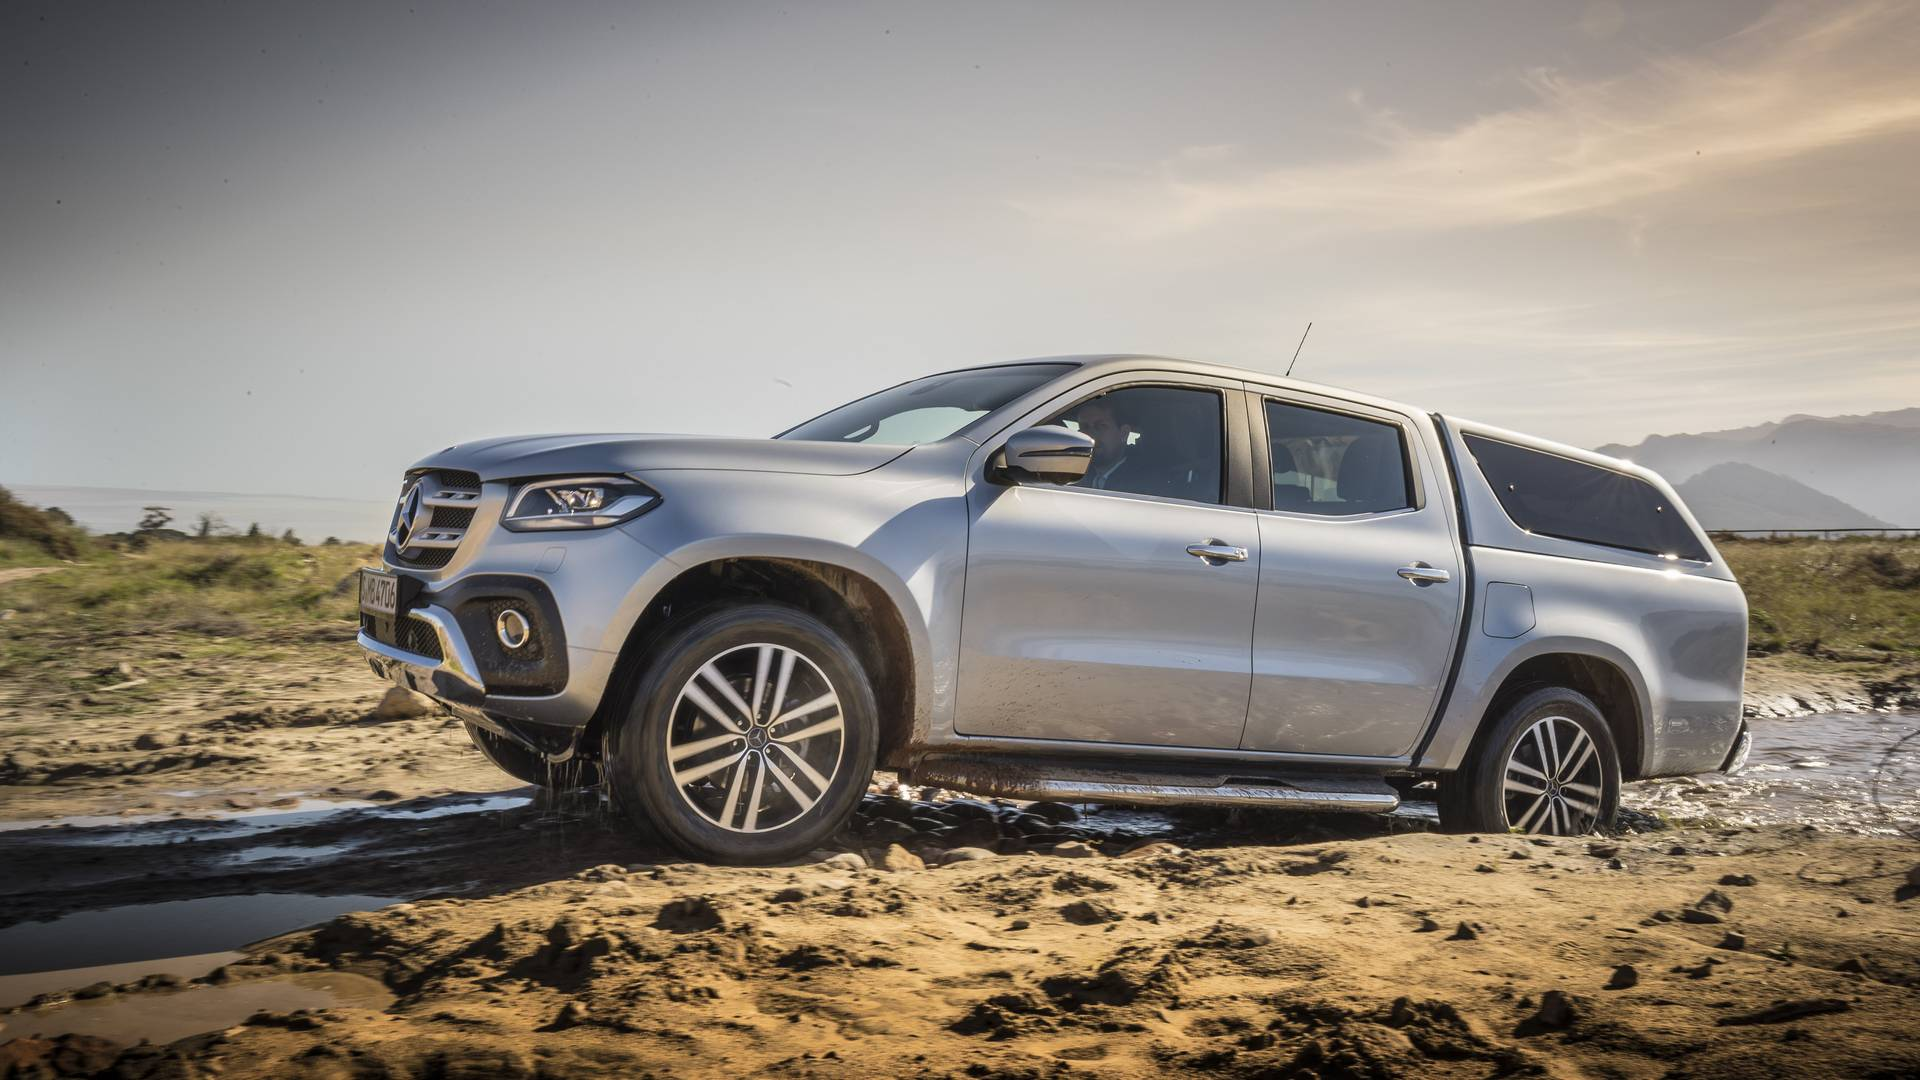 2018 mercedes benz x class first impression gtspirit for What are the different classes of mercedes benz cars